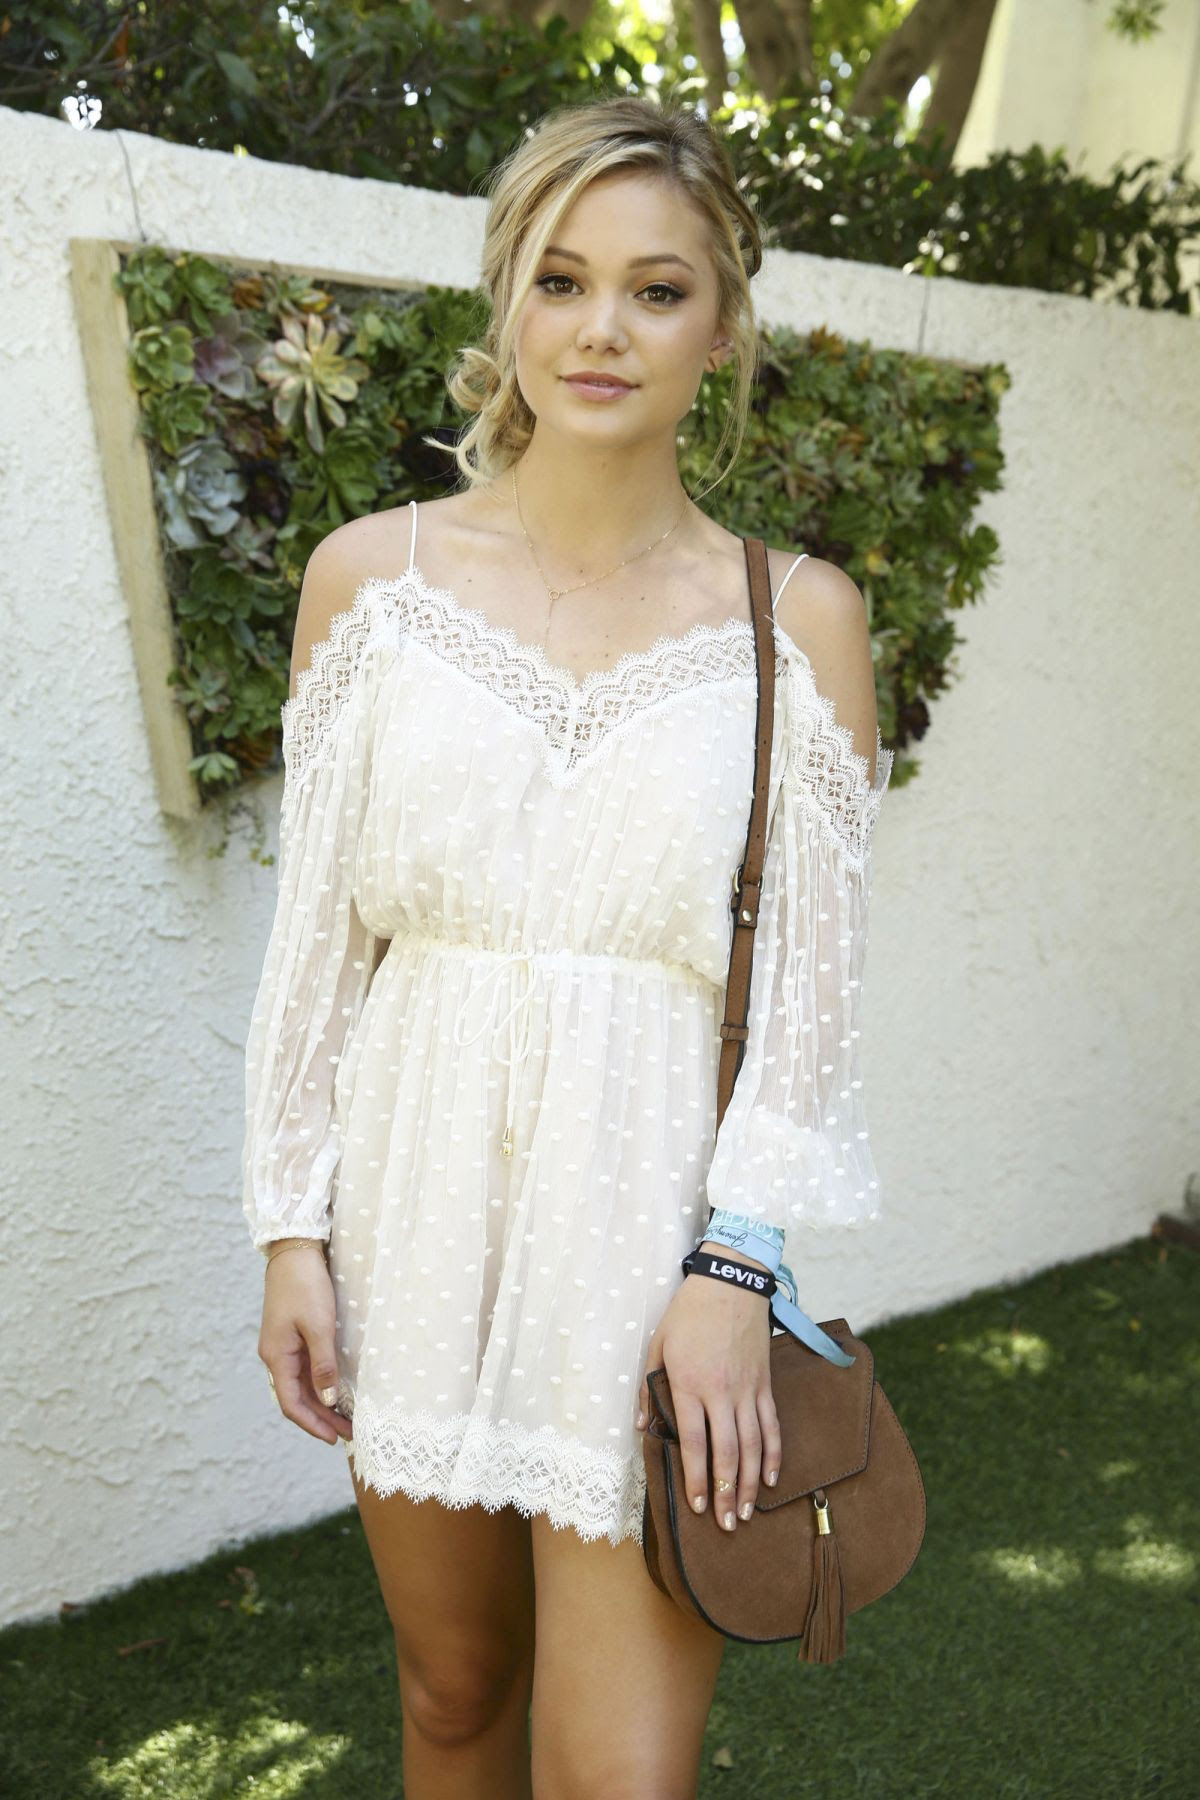 OLIVIA HOLT at Levi's at Coachella in Indio 04/16/2016